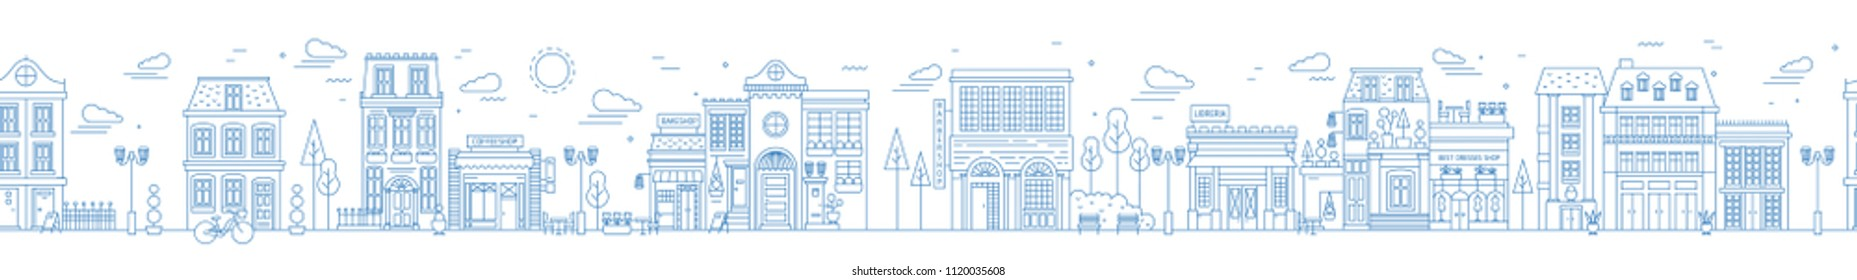 Monochrome seamless urban landscape with city street or district. Cityscape with residential houses and shops drawn with contour lines on white background. Vector illustration in lineart style